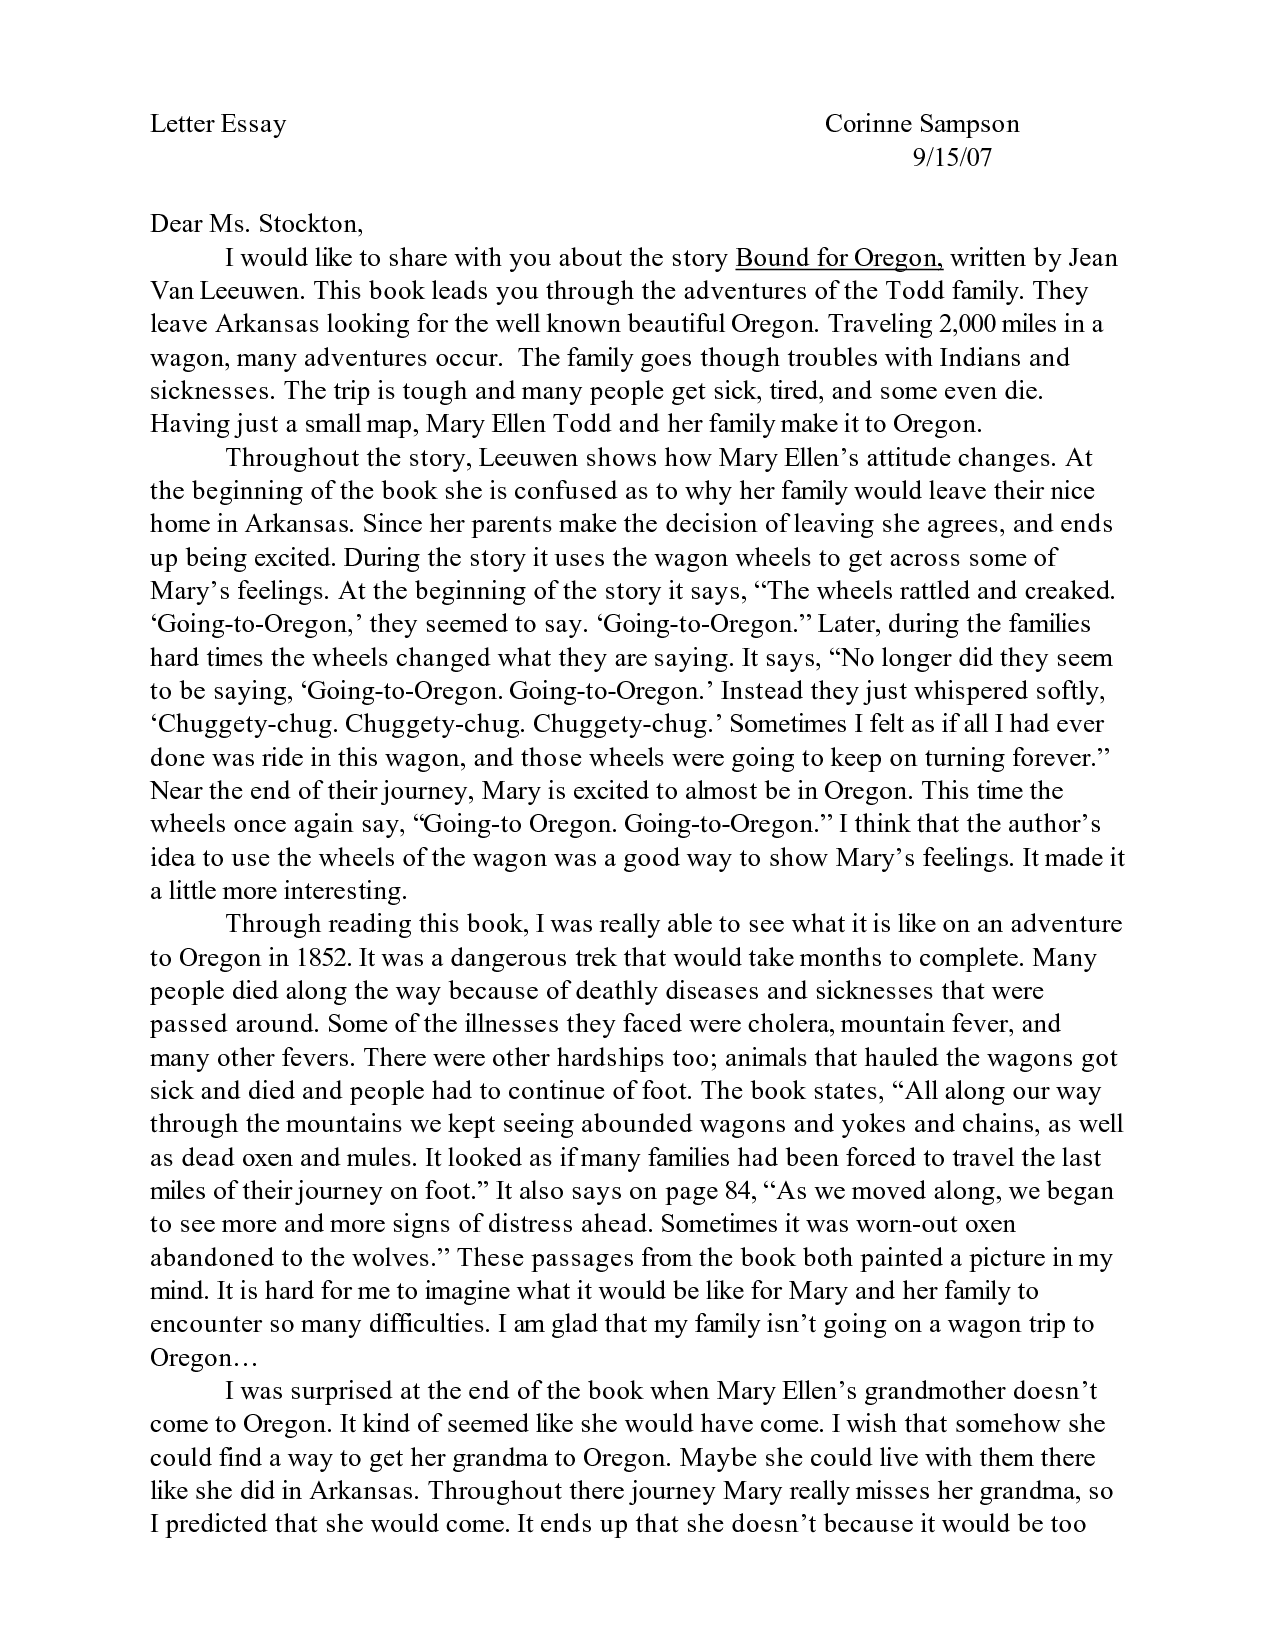 001 Essay Example Scholarship Sample Stunning Samples For College Students Pdf About Why I Deserve The Full